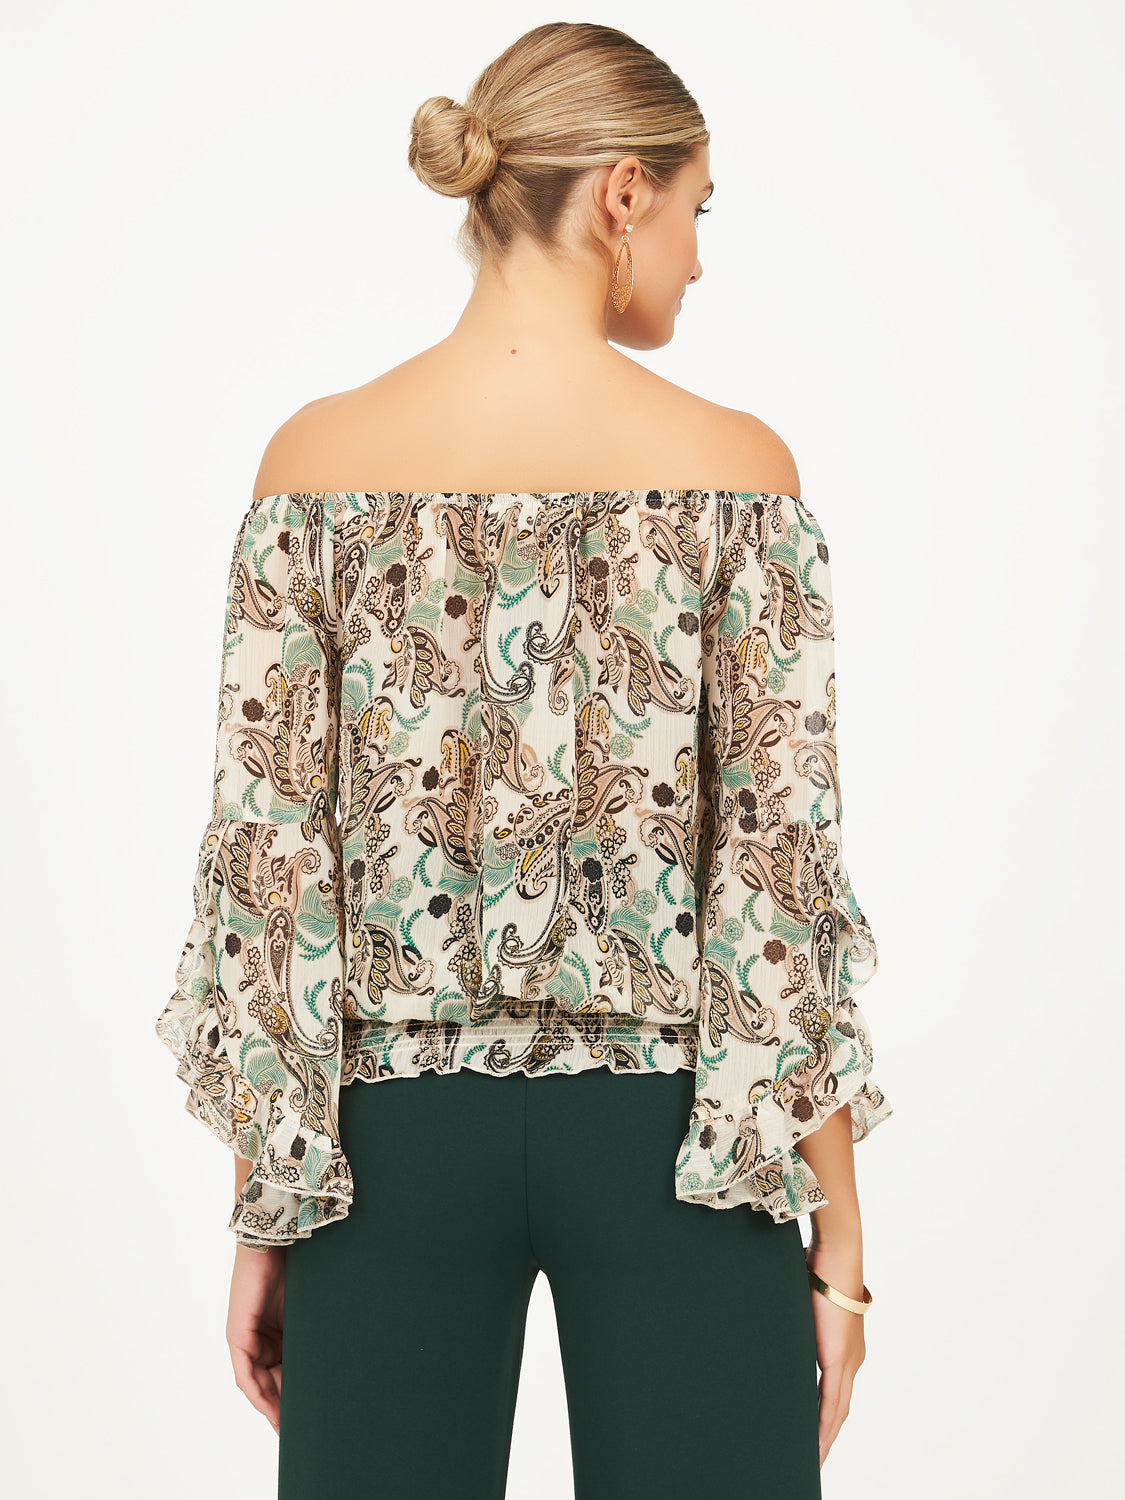 Raglan Sleeve Peasant Top With Ruffles